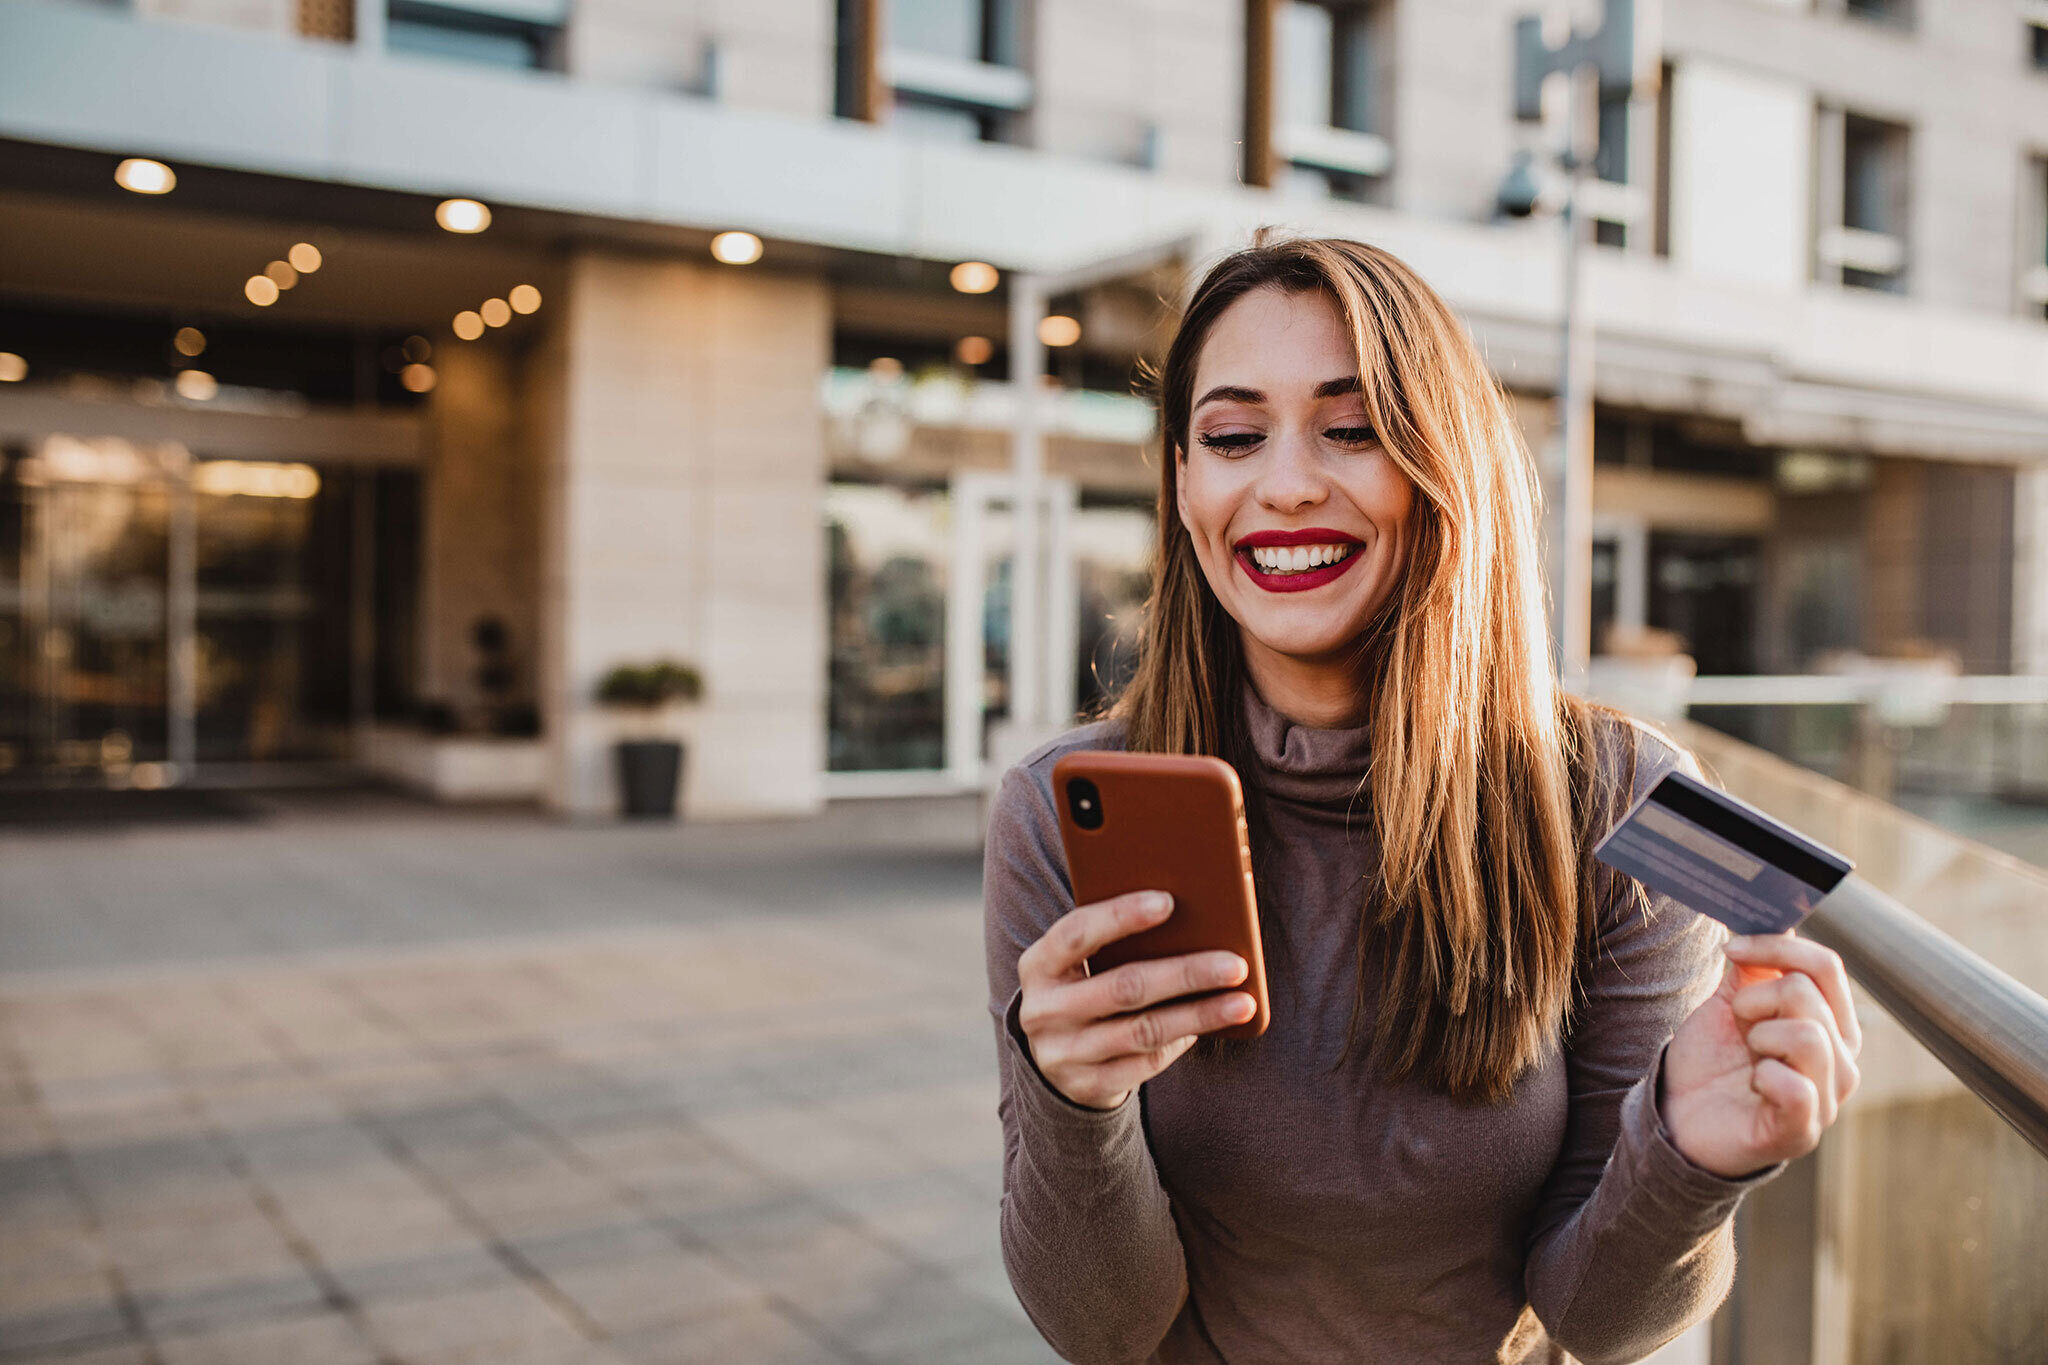 Gen z woman holding credit card and phone